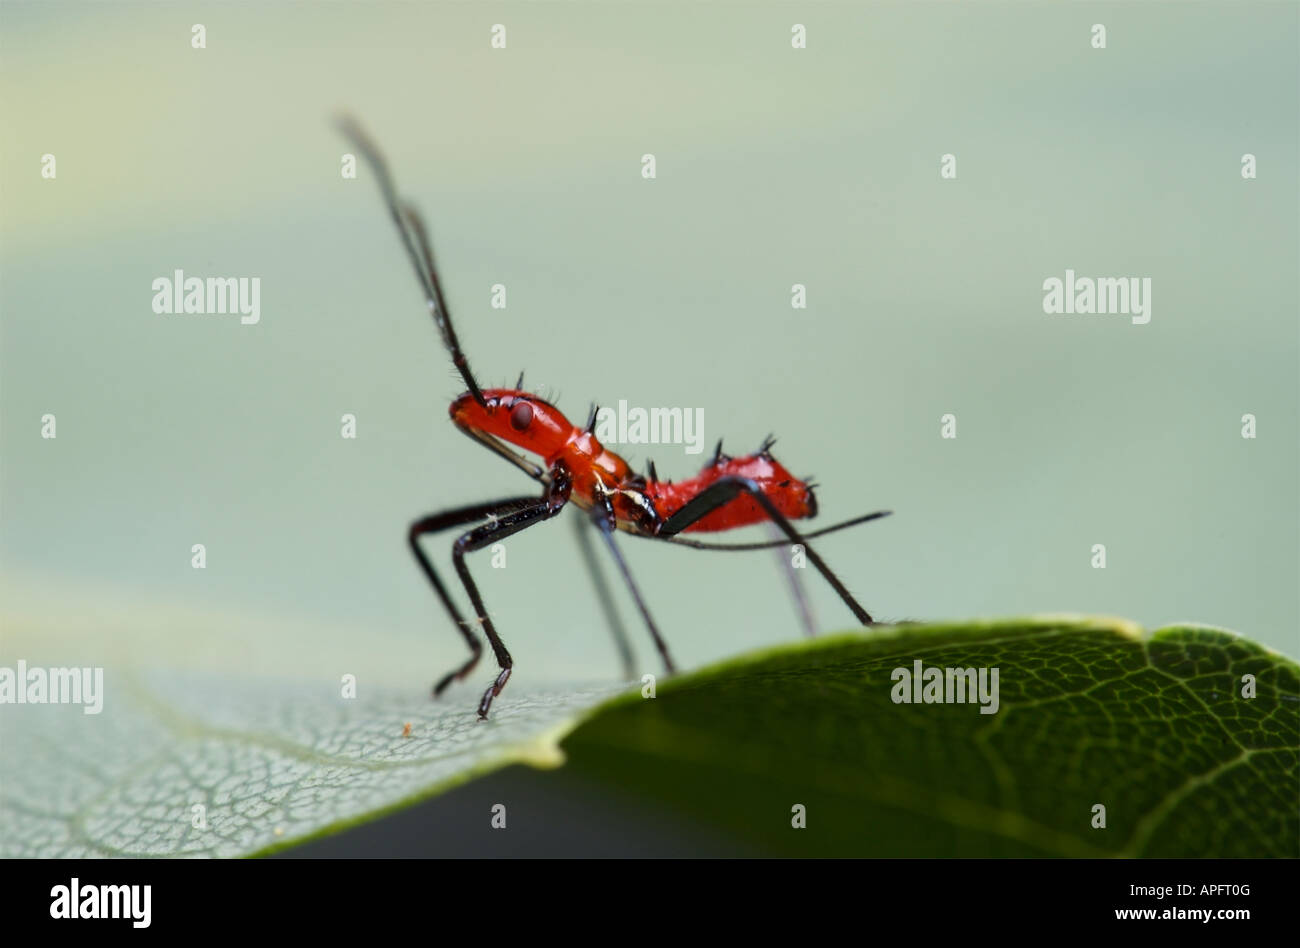 Leaf-footed bug nymph has a red body with black spikes and a long ...